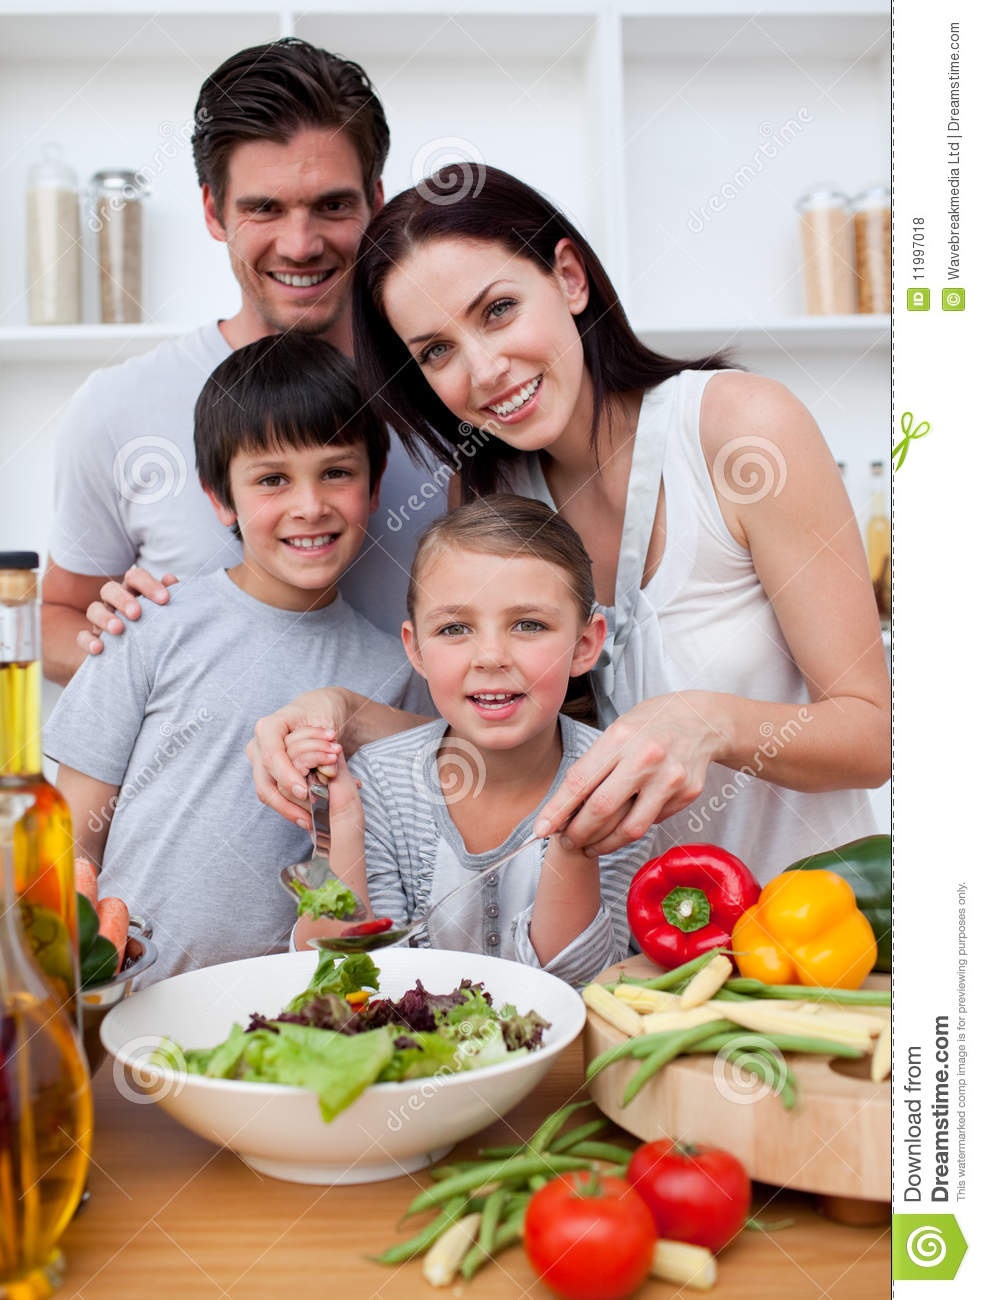 Smiling Family Cooking Together Stock Photo - Image of latin, hand: 11997018